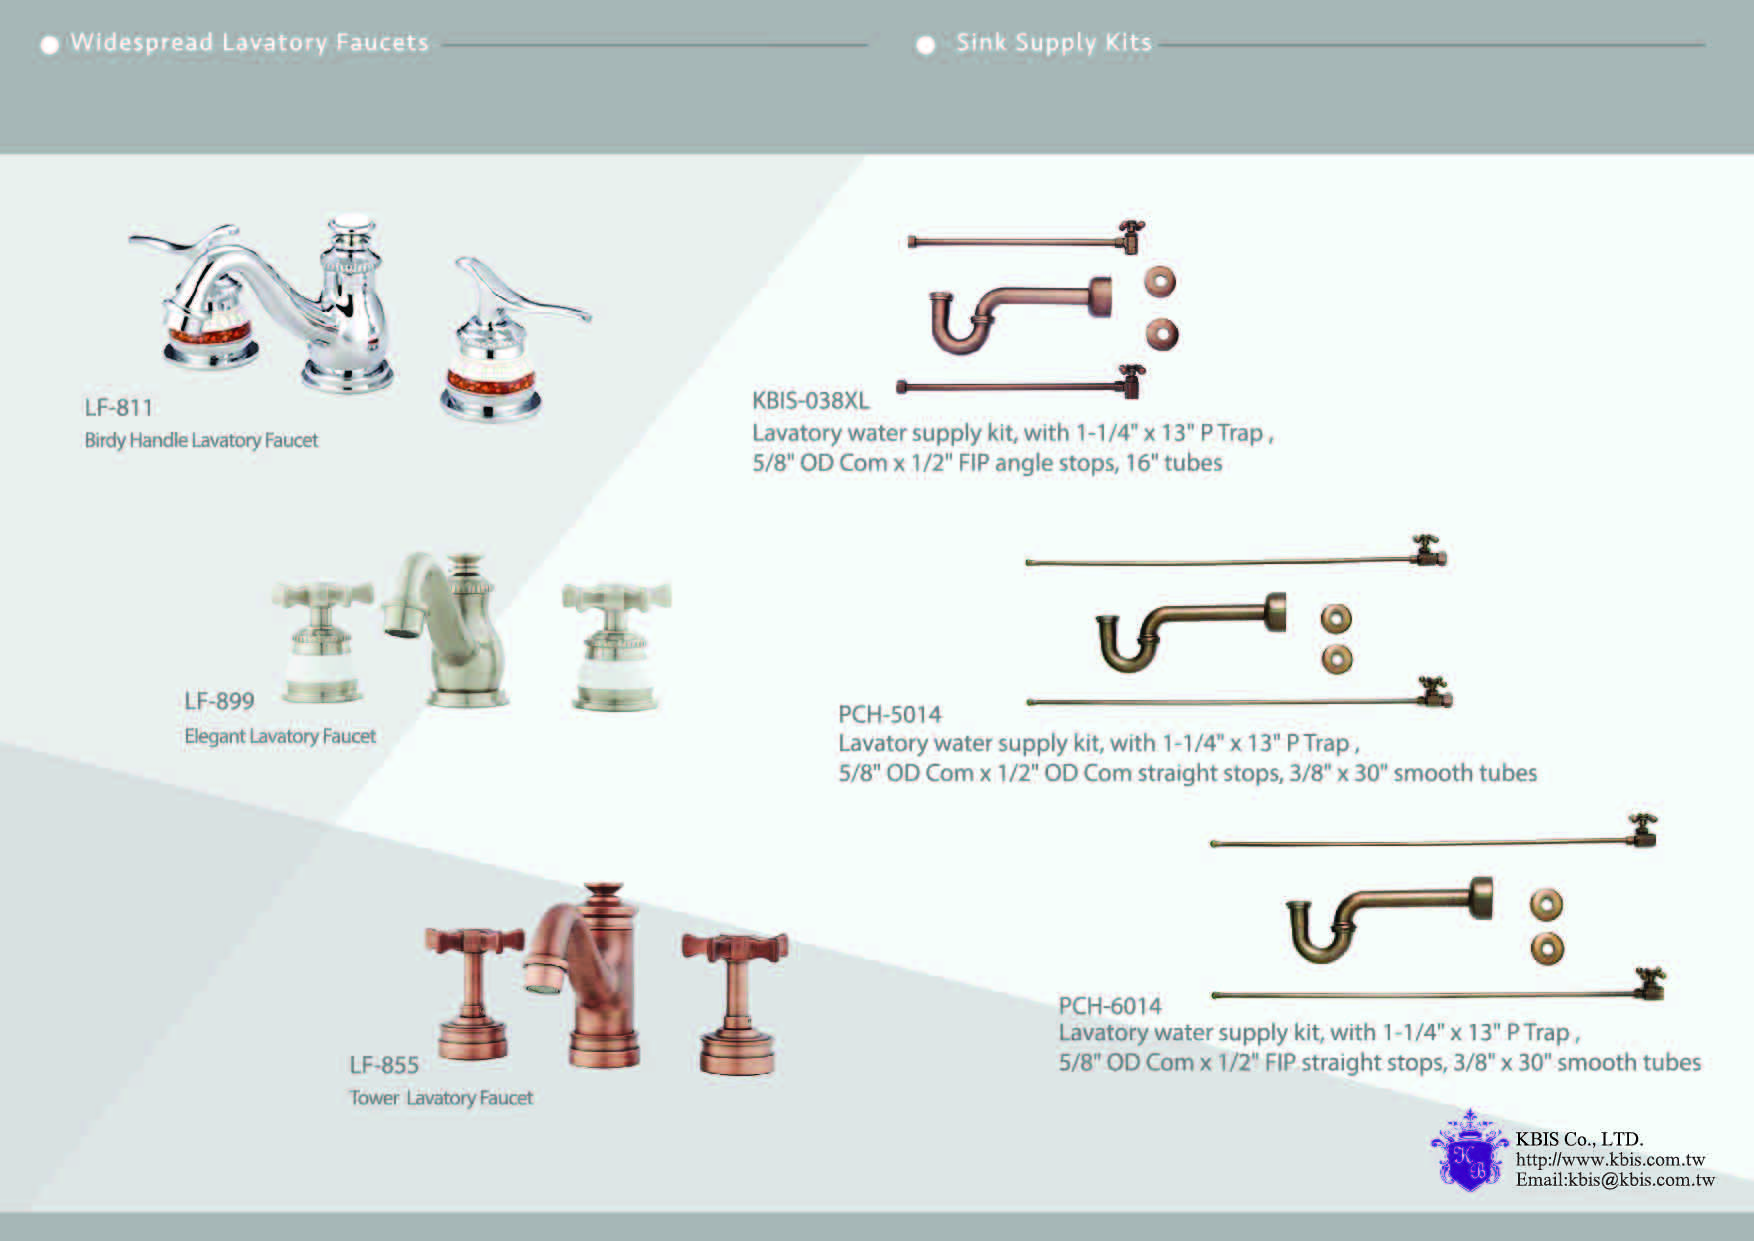 Widespread Lavatory Faucets & Sink Supply Kits